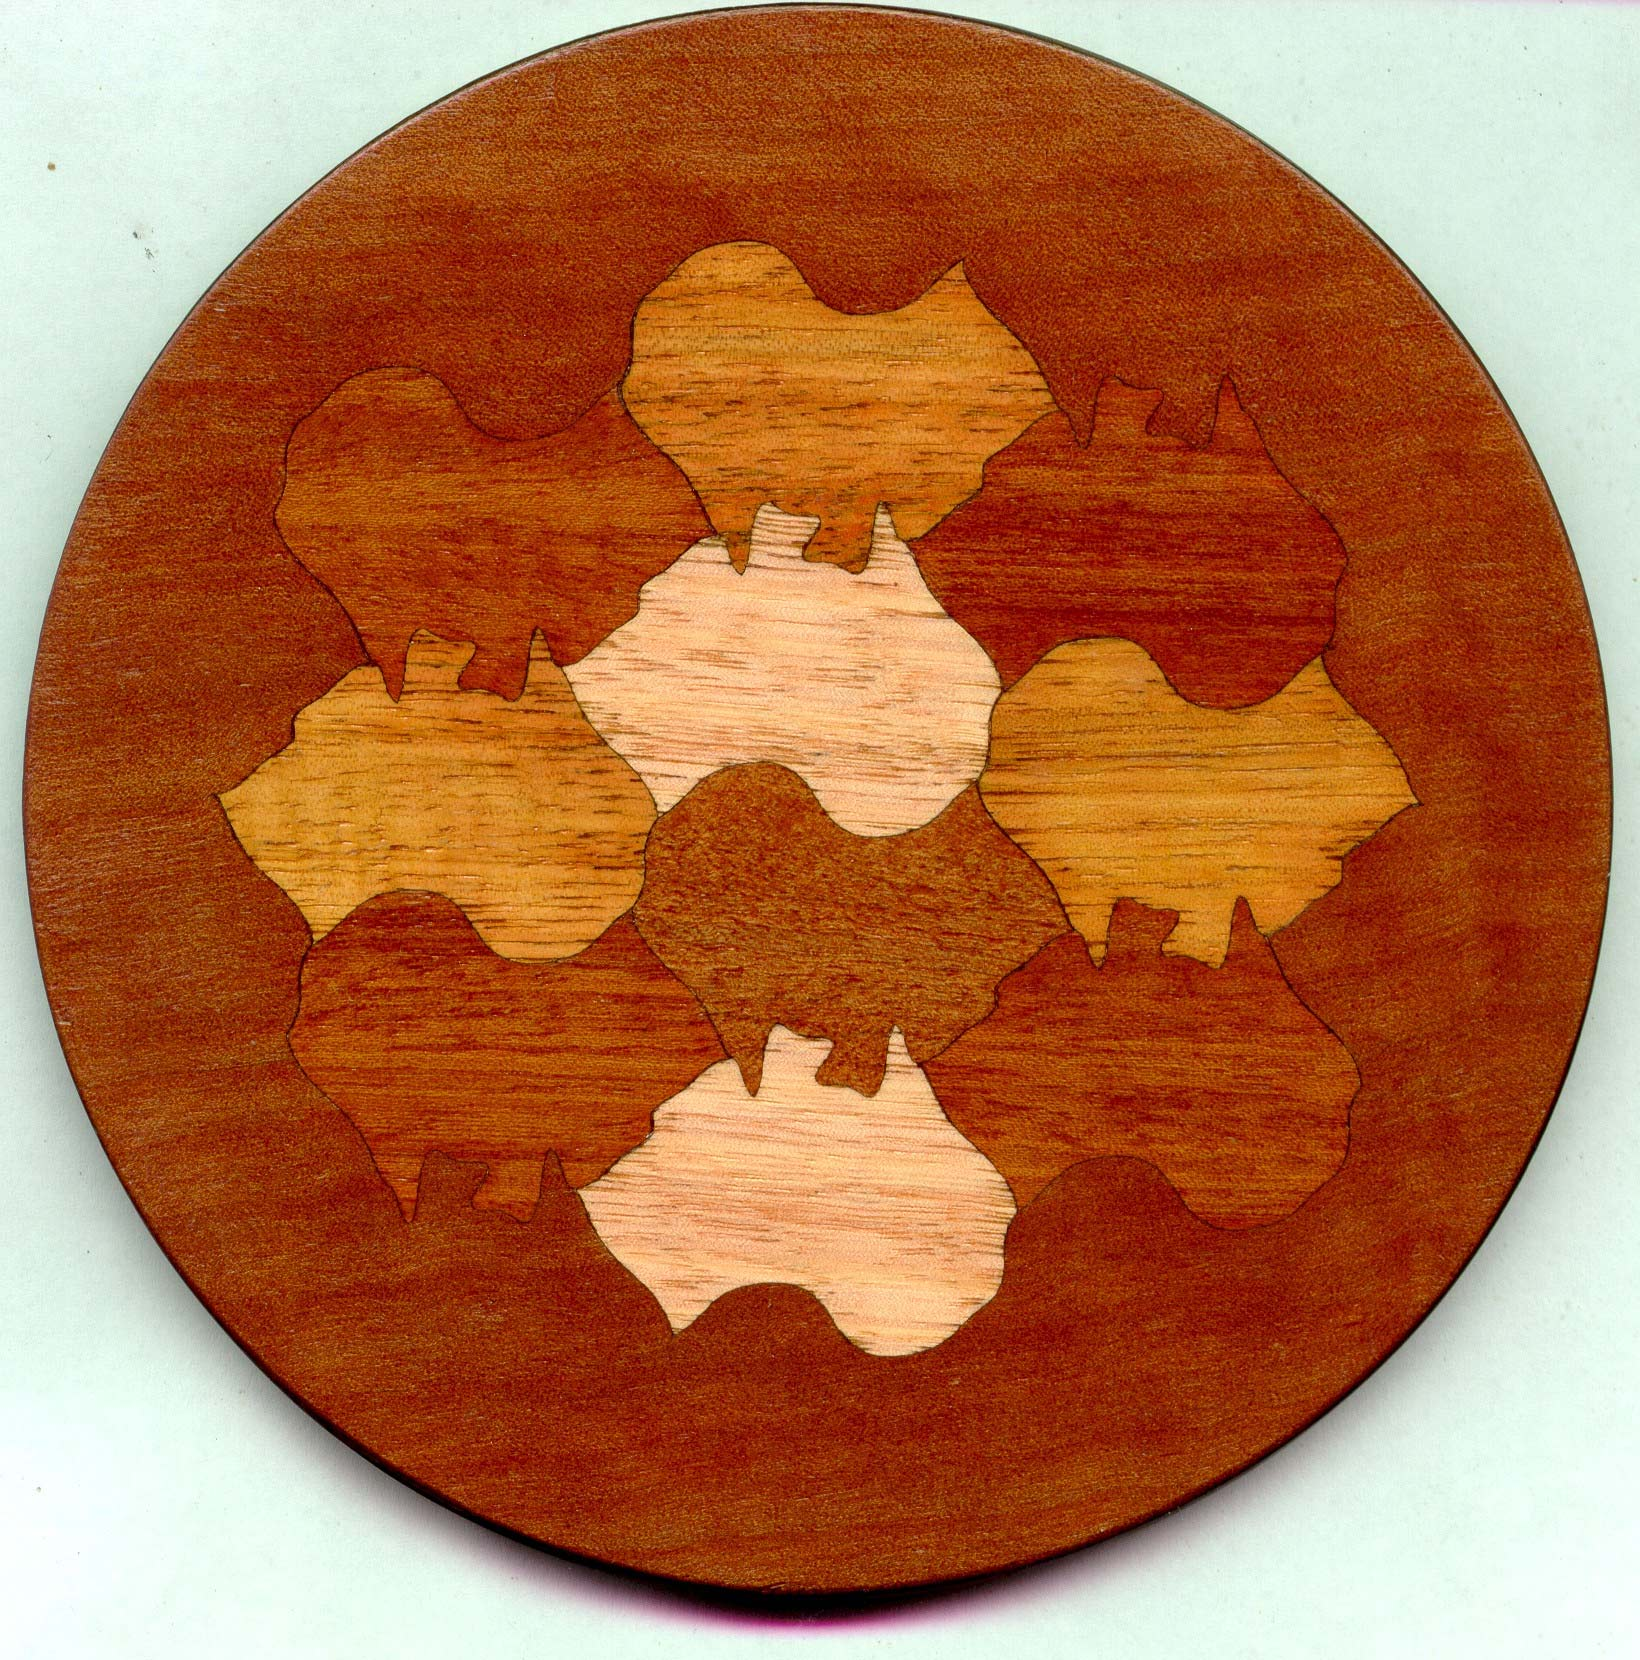 jewelry box lid: a tessellation of australia (the continent)